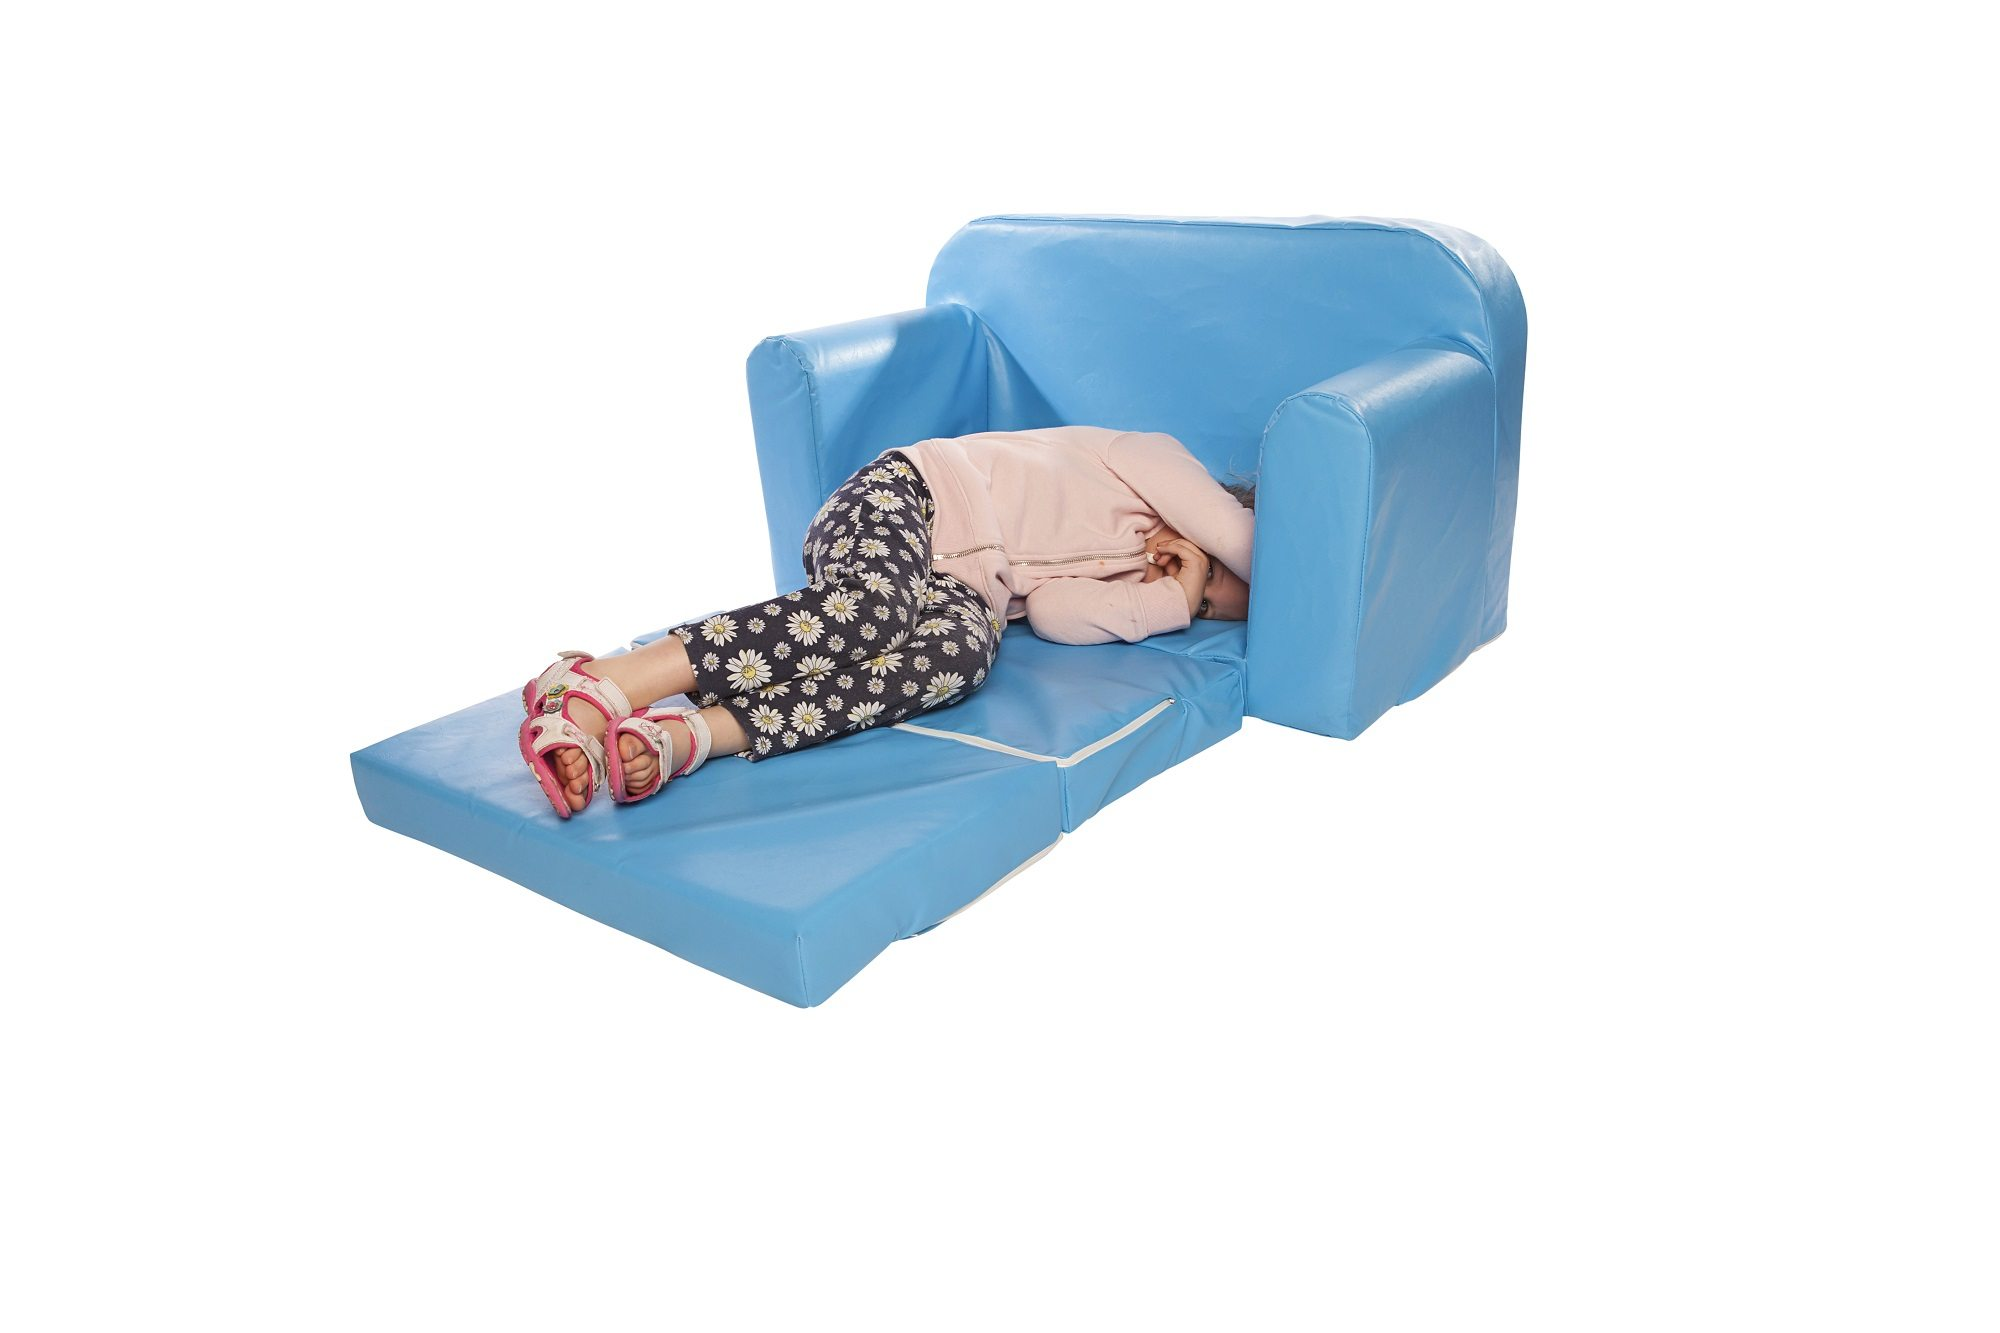 Buy Sofa Bed Online Snug Sofa Bed Soft Play Furniture Buy Online Today